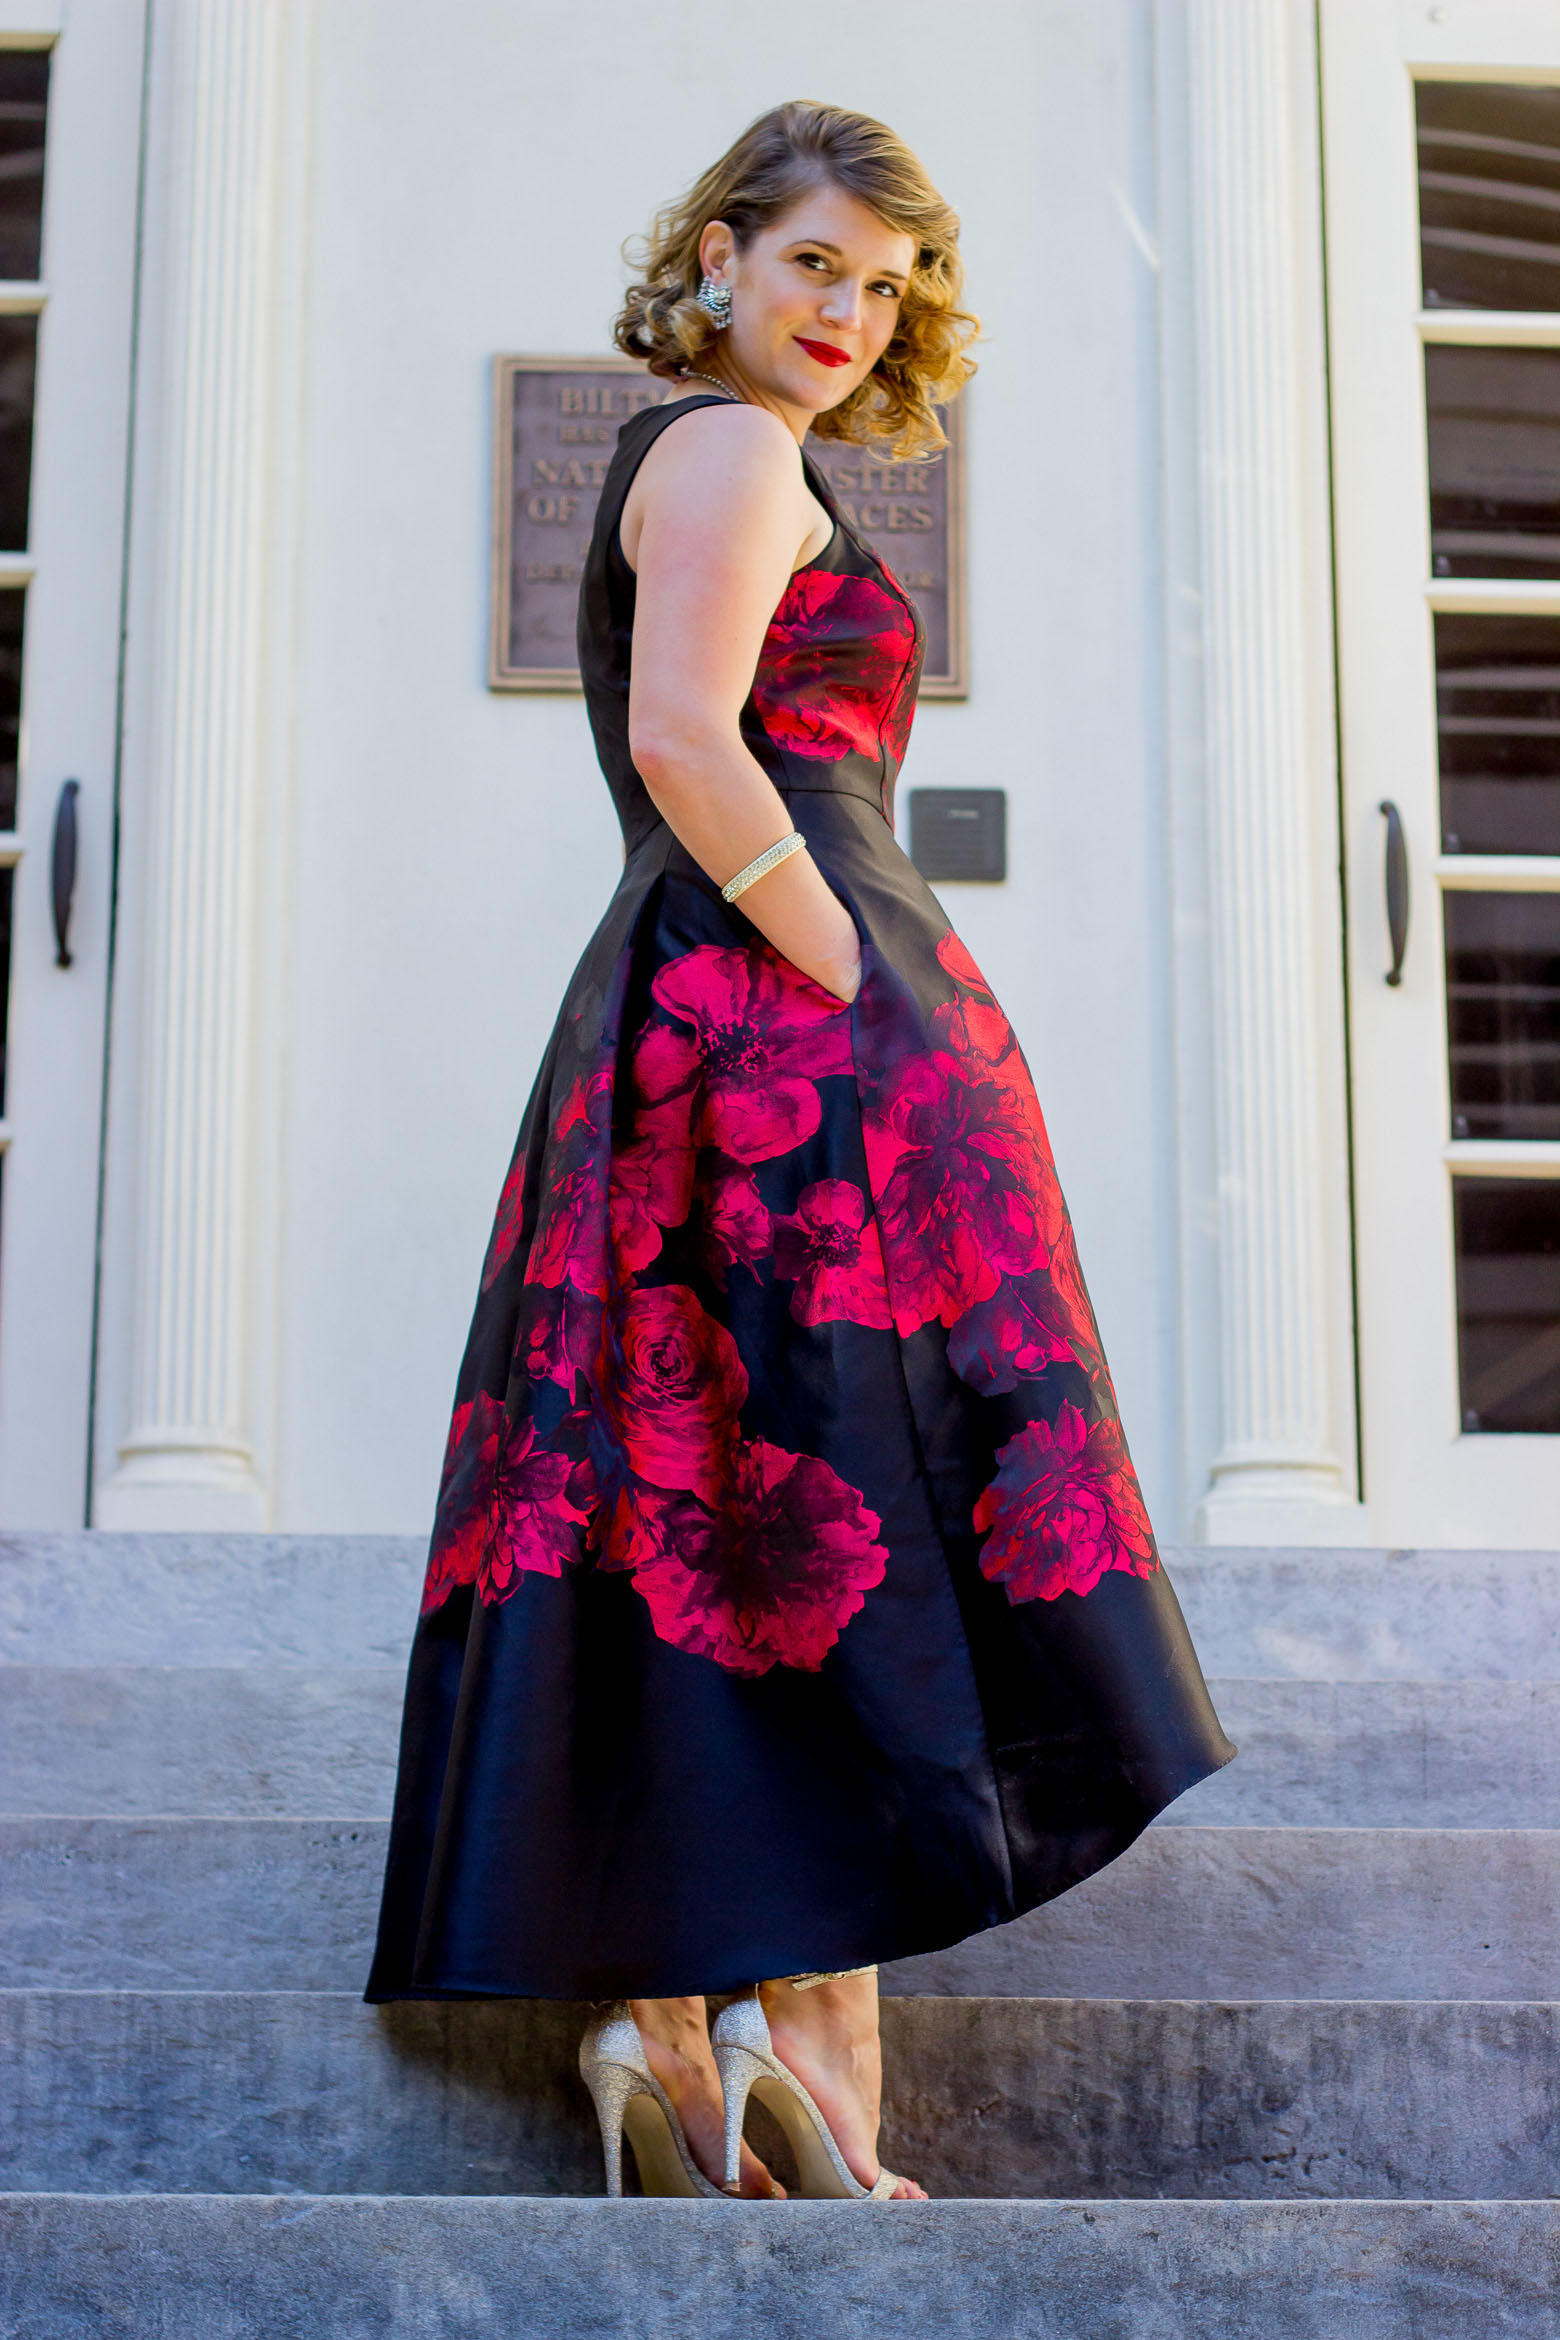 WHAT TO WEAR TO A FORMAL WEDDING - Belle Meets World